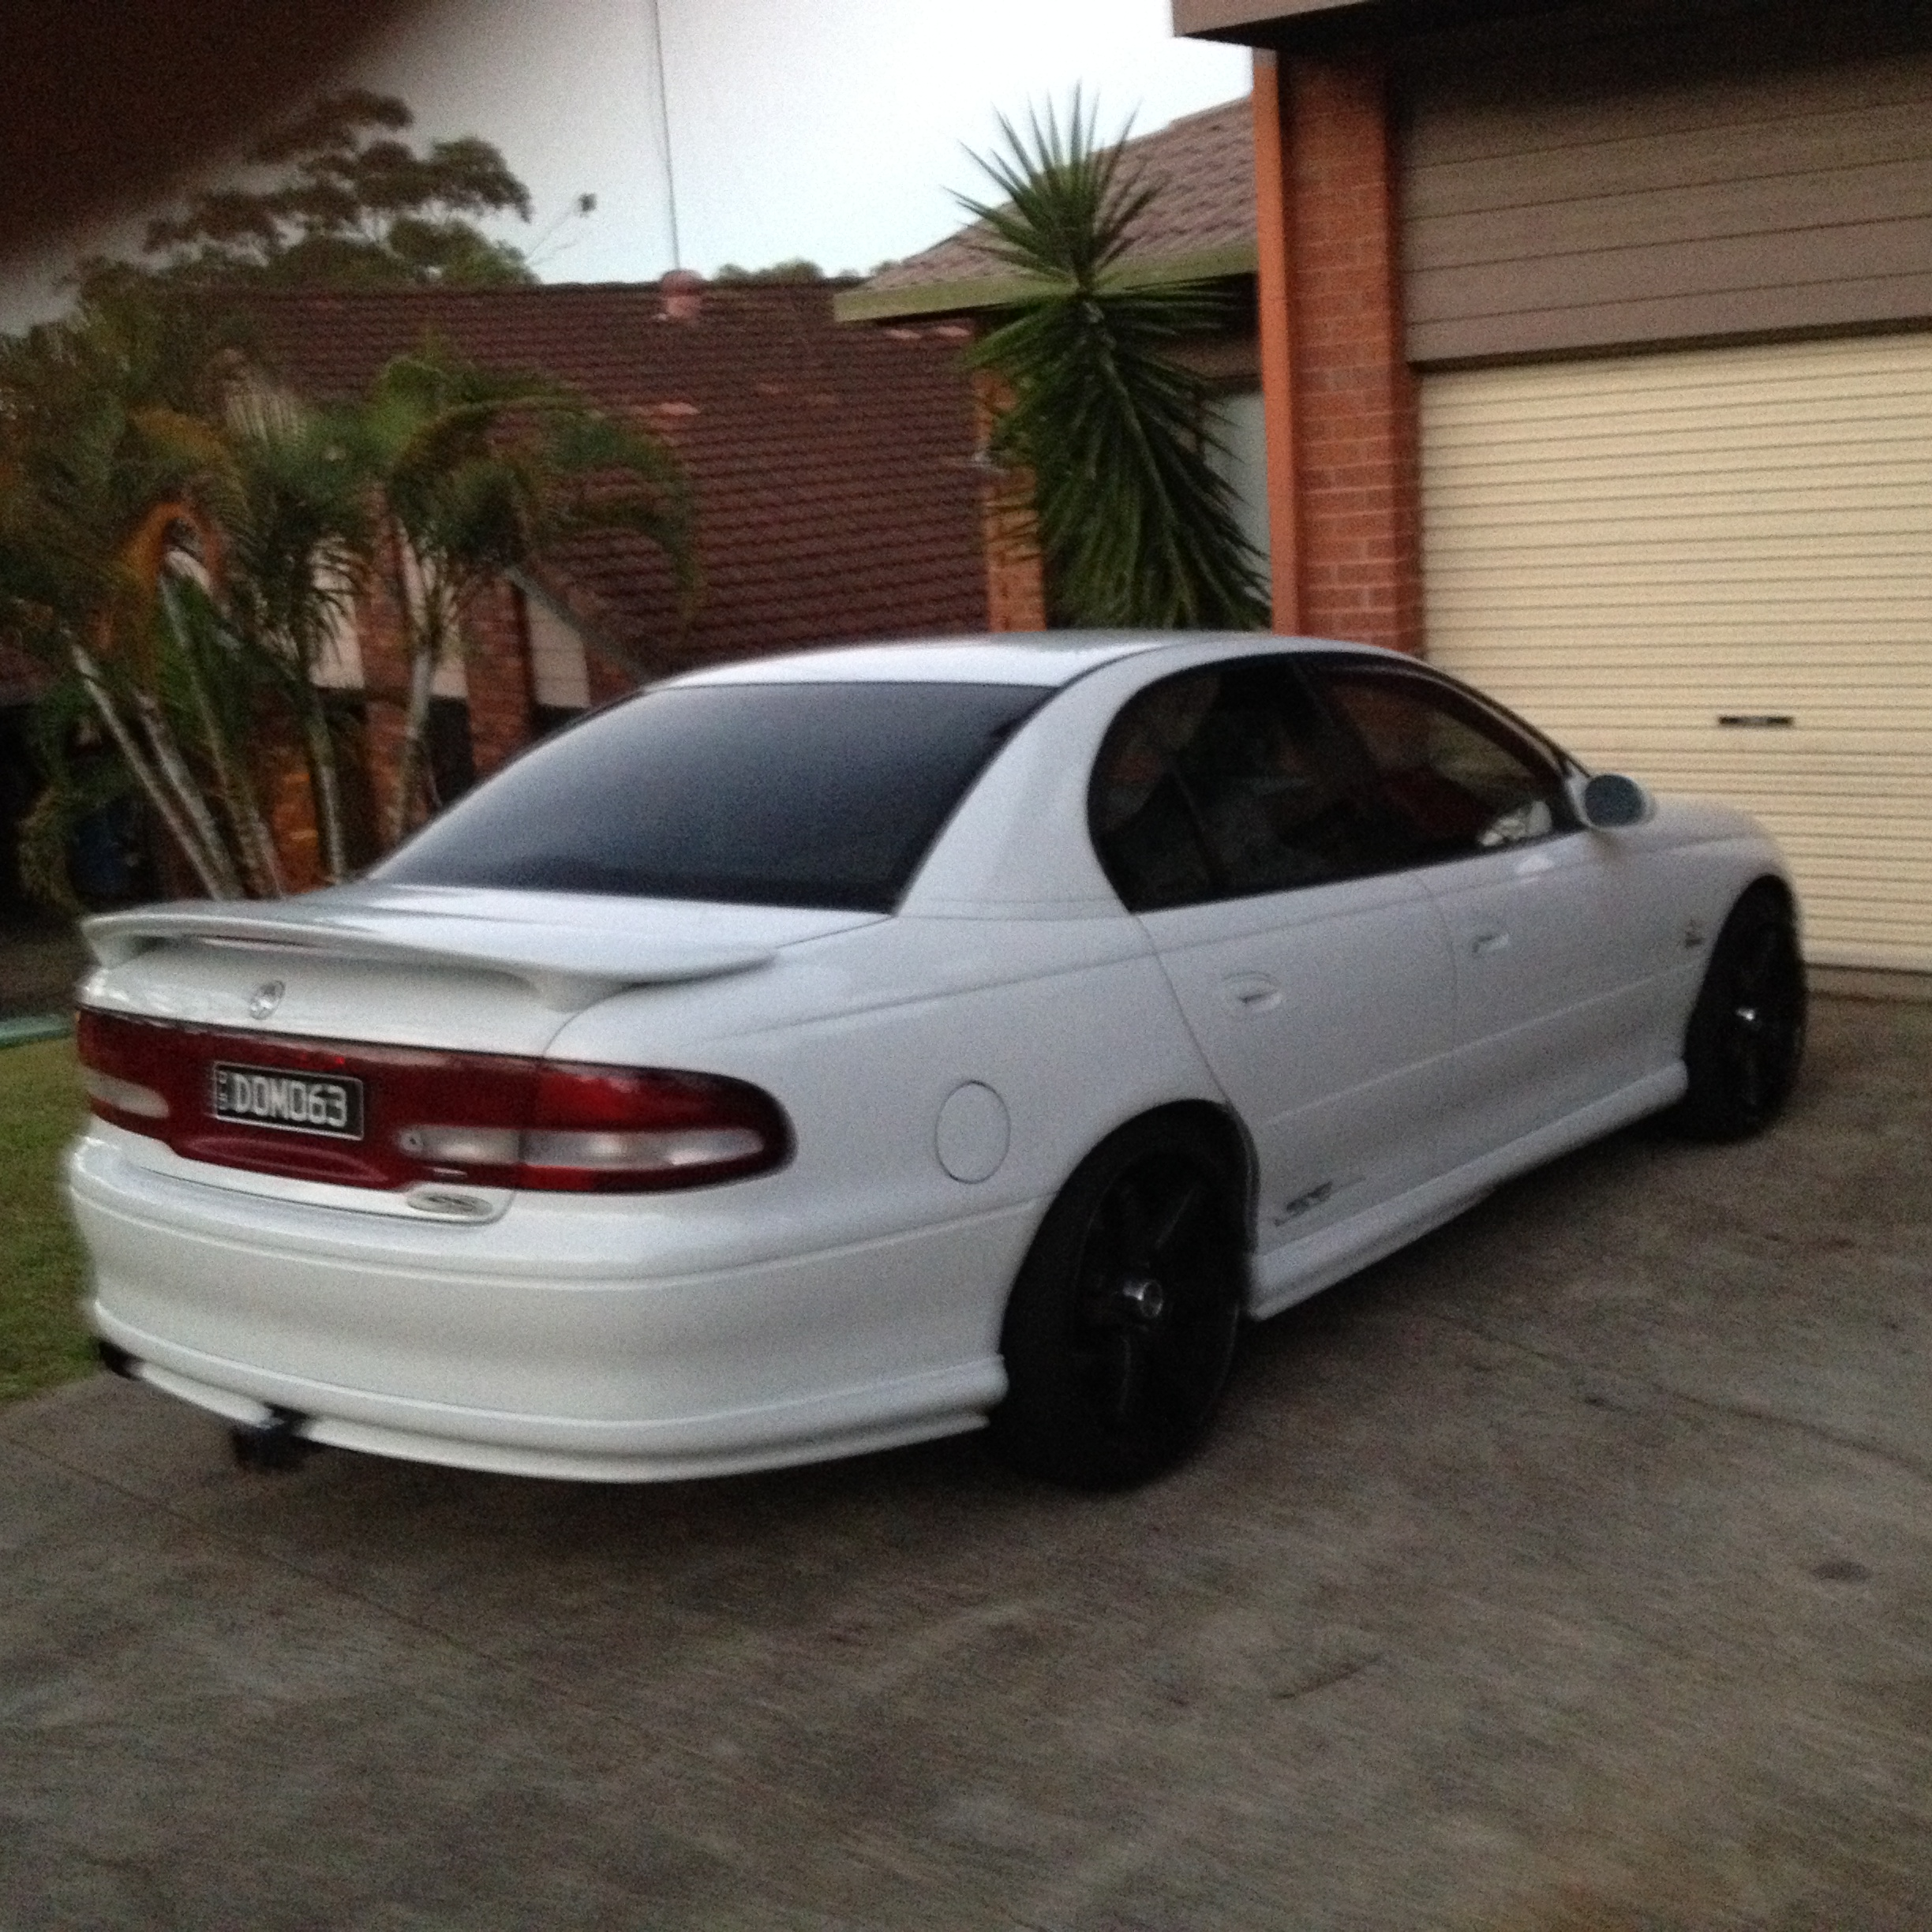 2002 Holden Commodore Car Valuation: 2000 Holden Commodore VT II Sedan 4DR Auto 5.7 For Sale Or